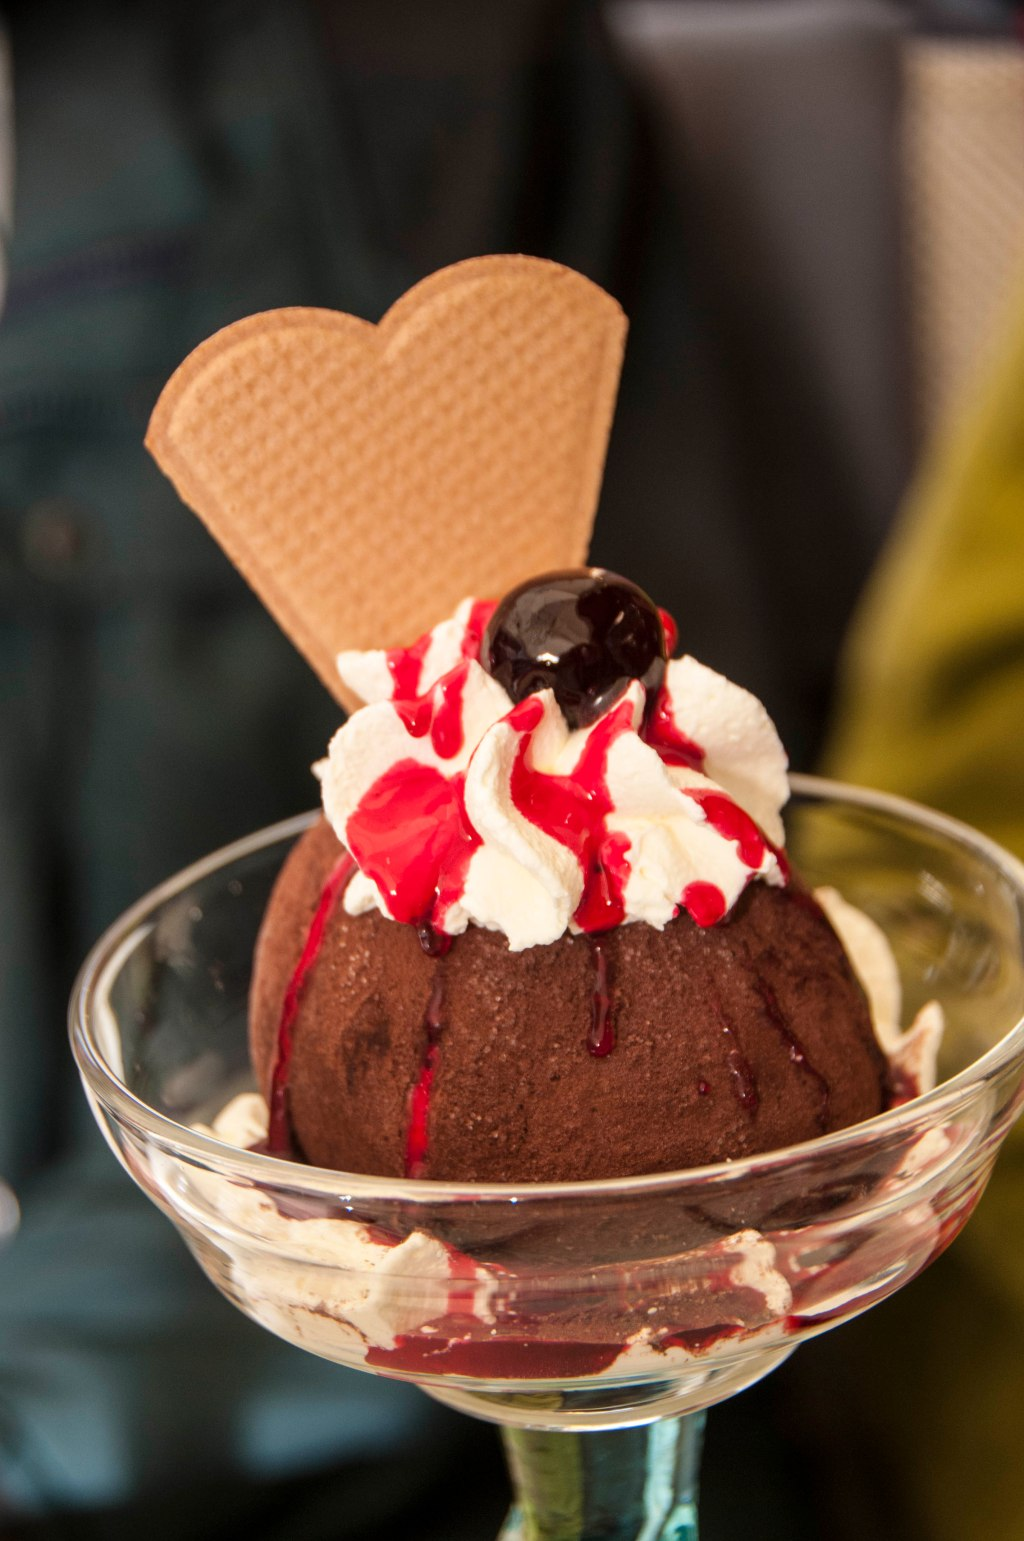 An enormous chocolate truffle, dripping with raspberry coulis.